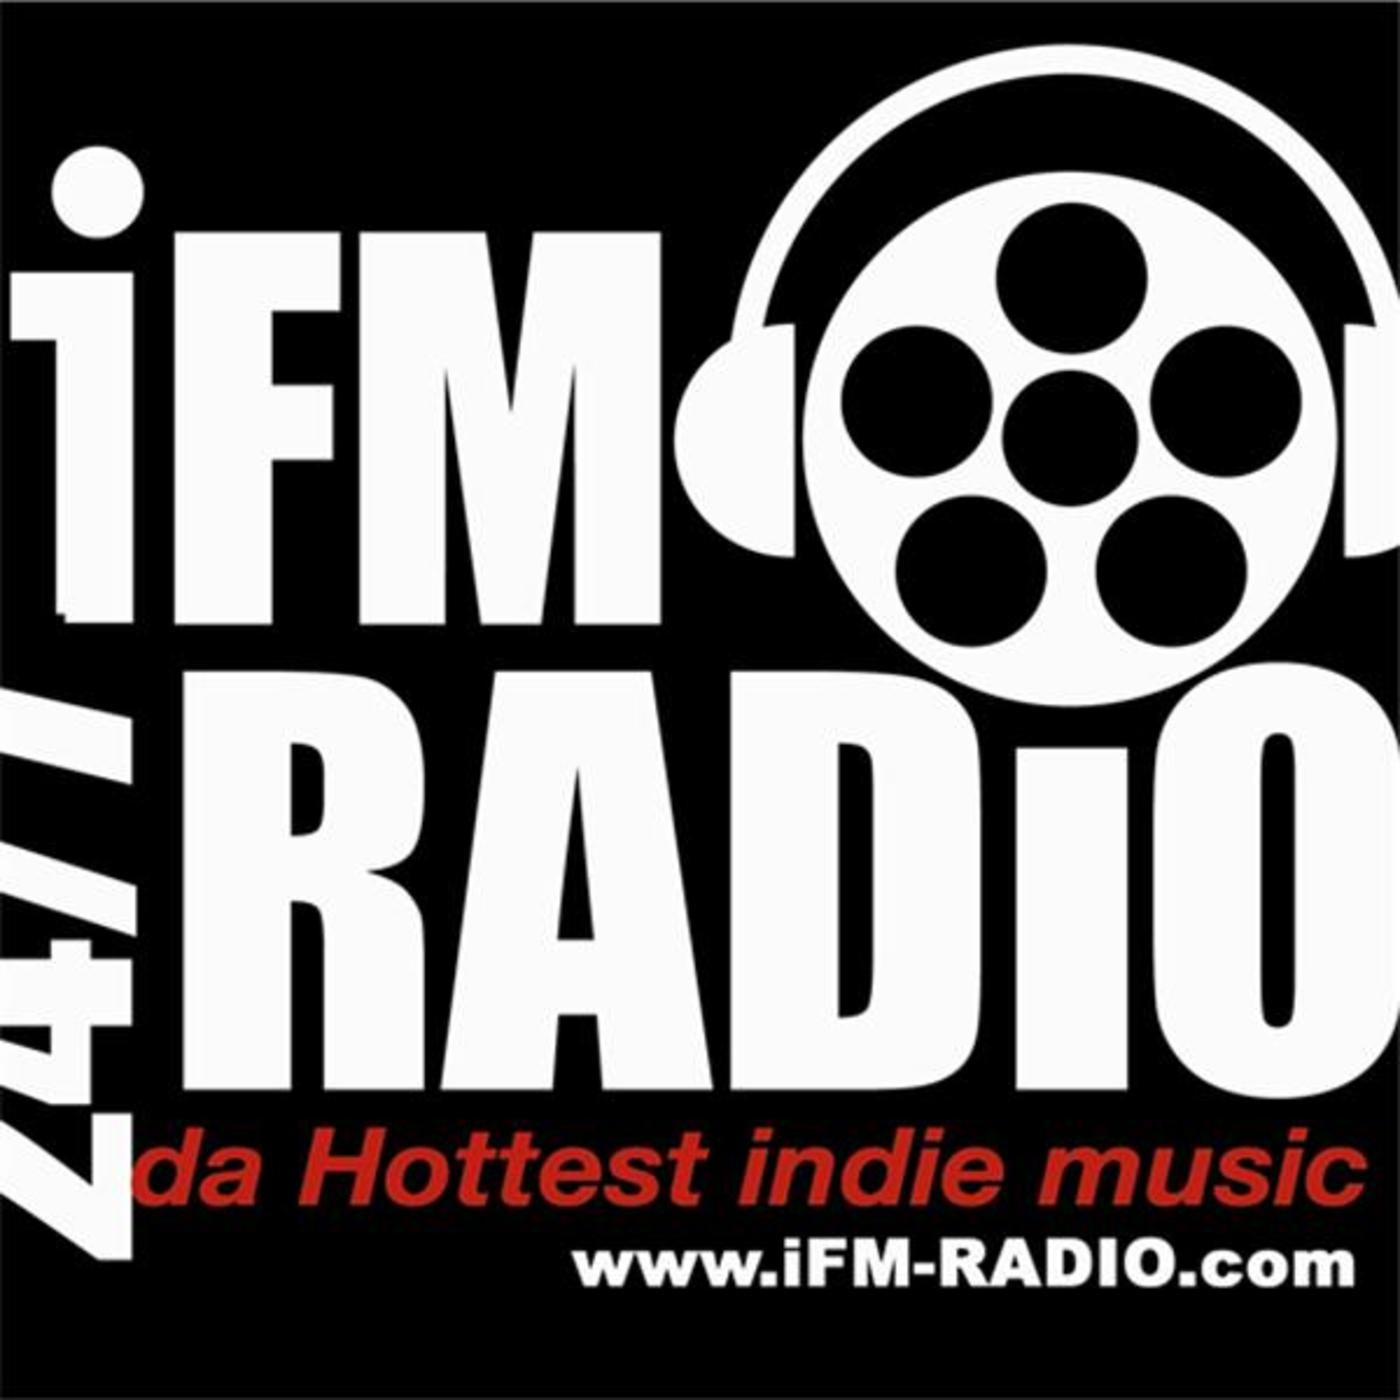 ifm radio station 24-7 radio